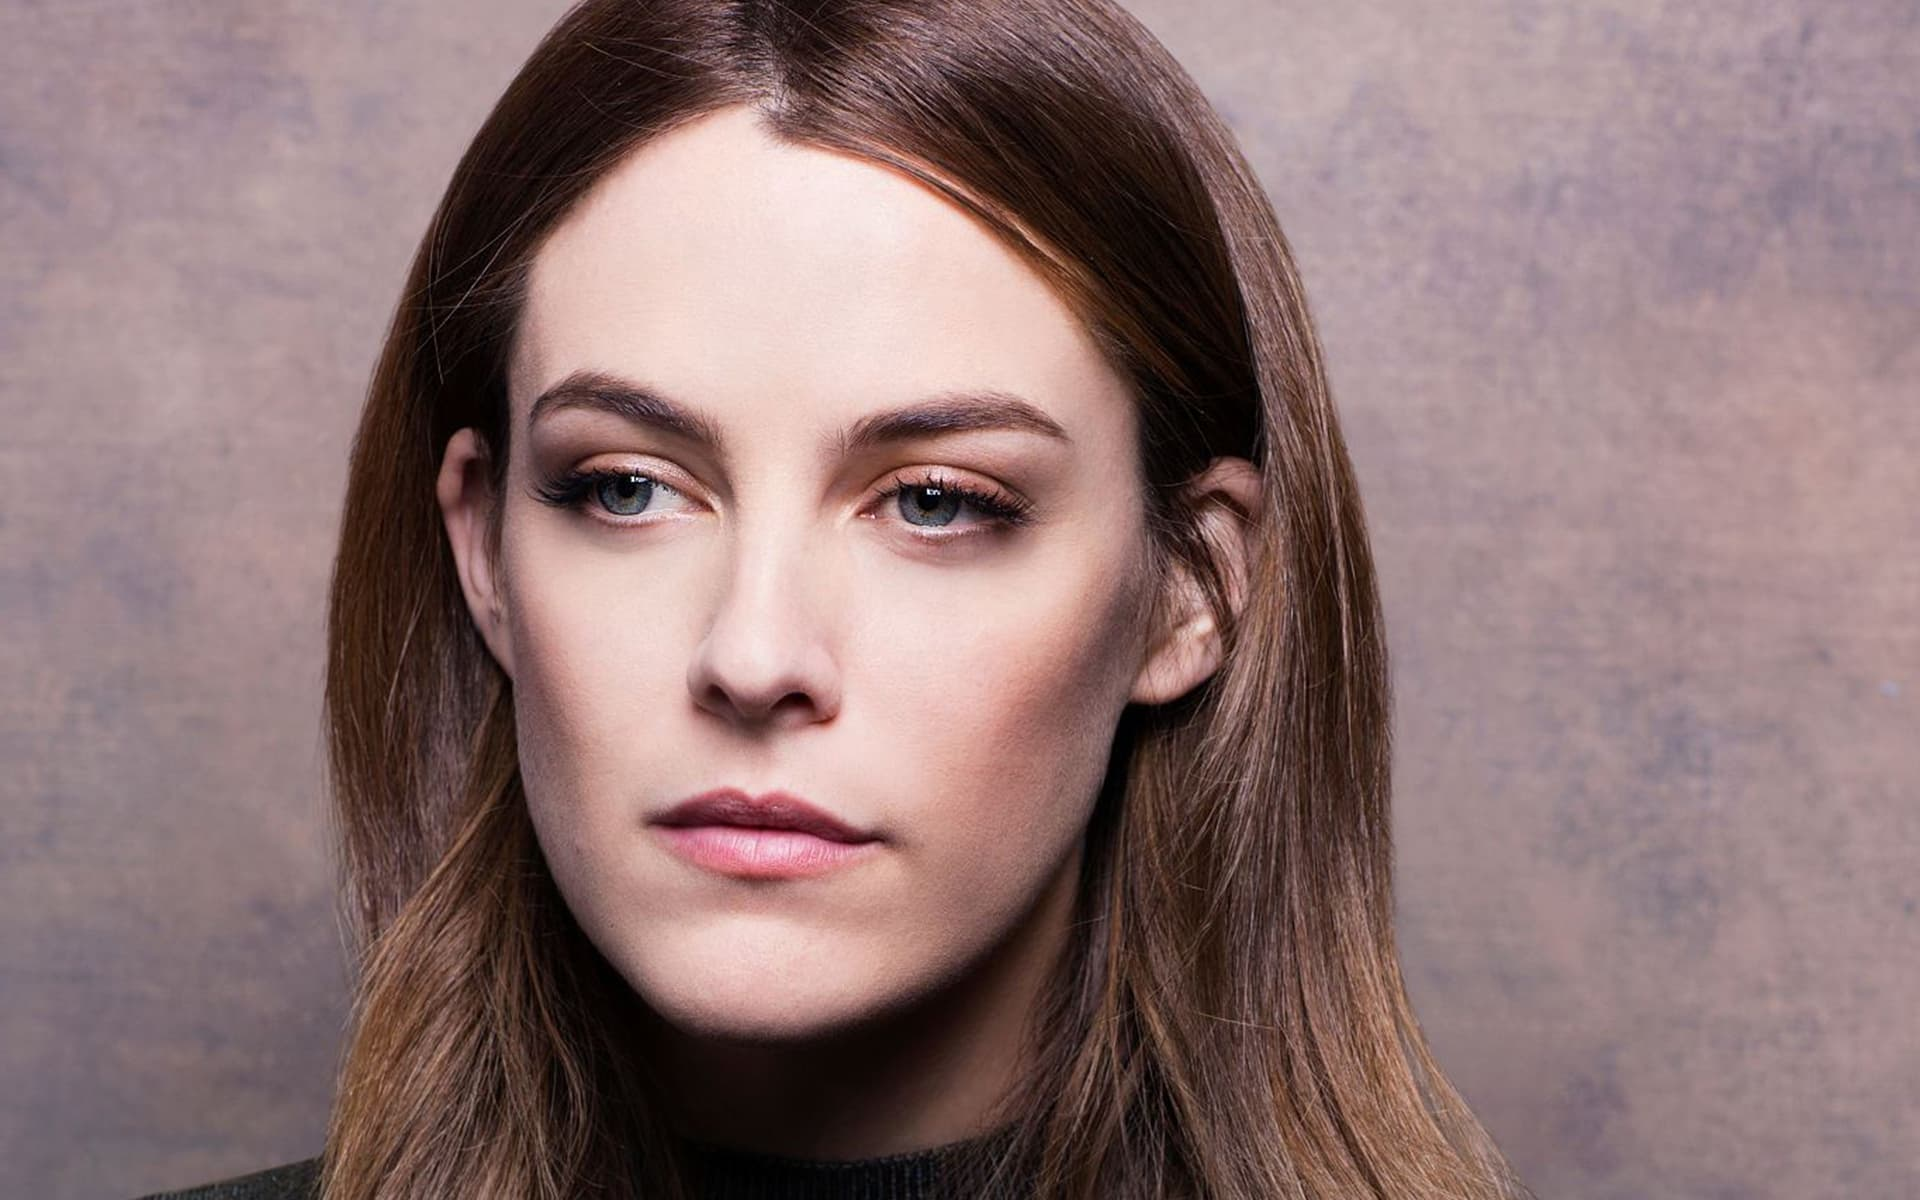 1920x1200 - Riley Keough Wallpapers 29